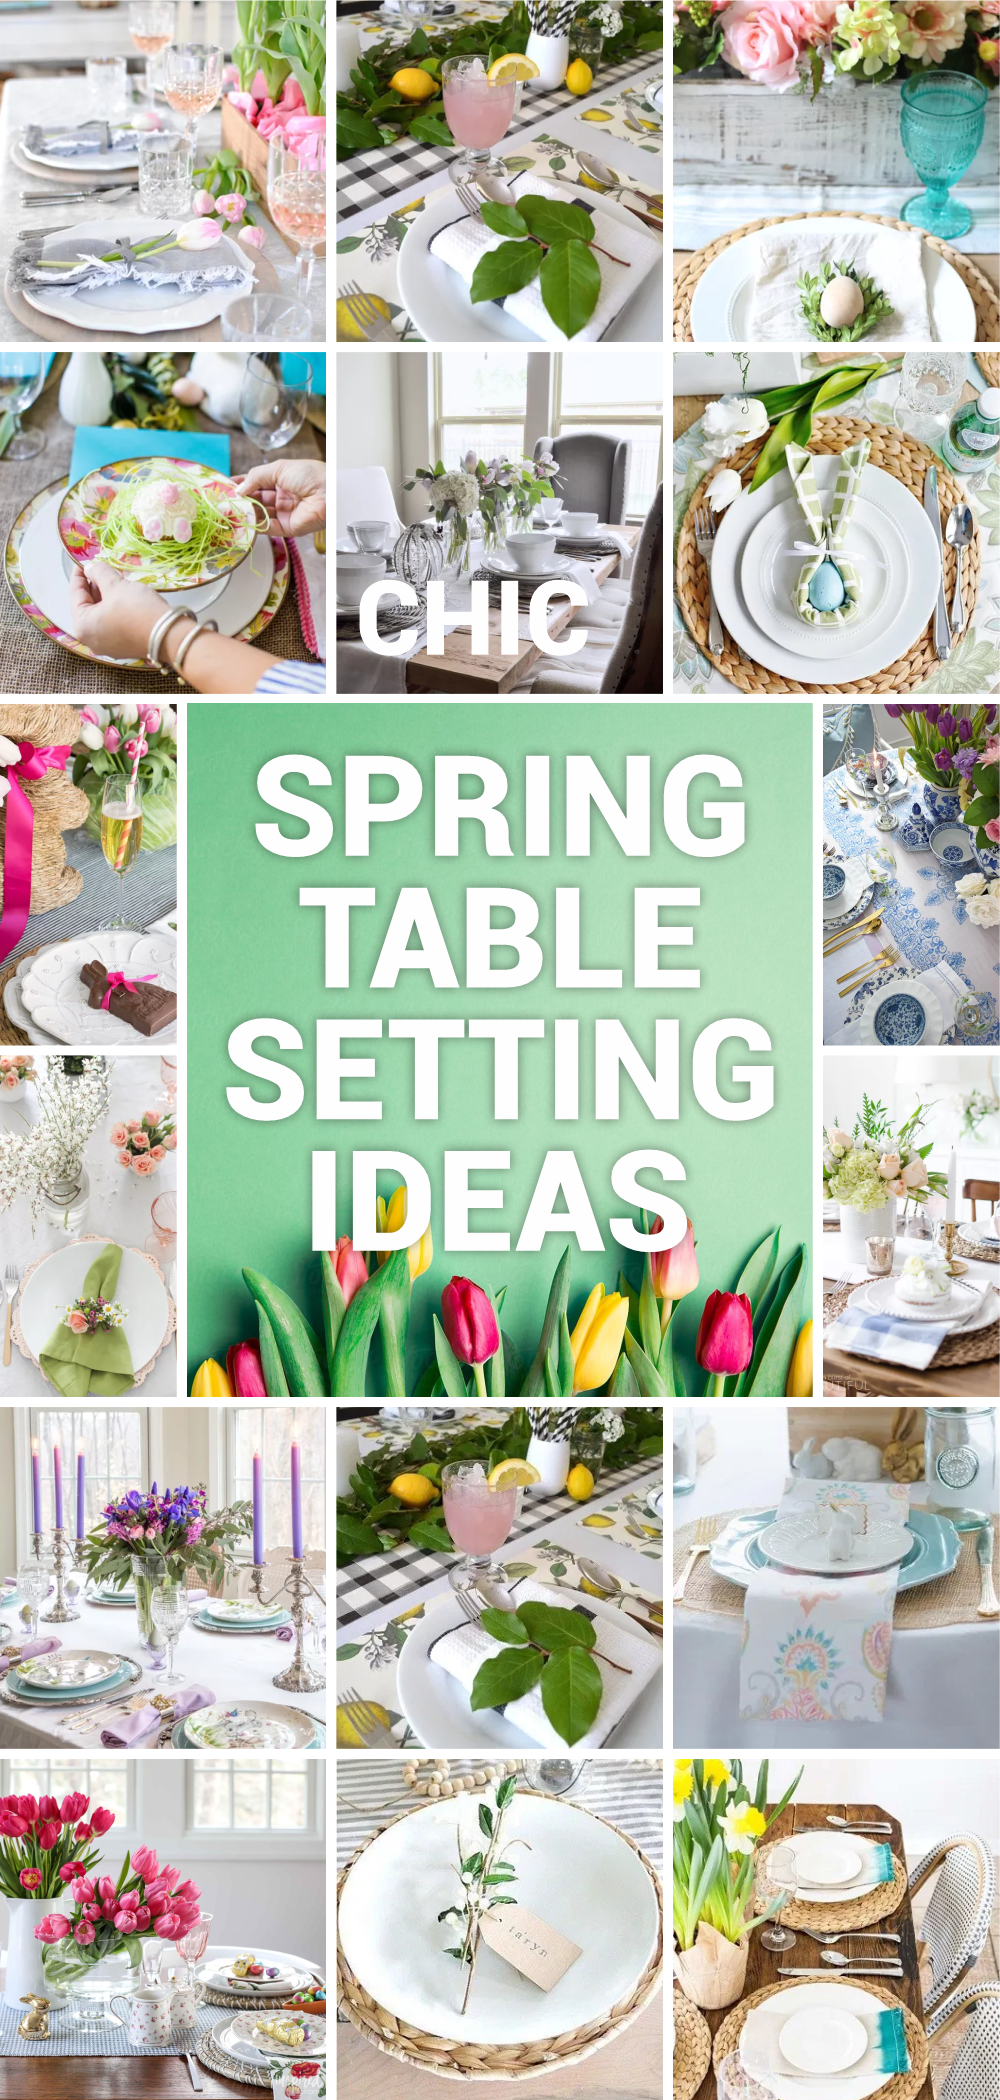 Chic-spring-table-setting-ideas-to-enjoy-your-dinner-and-lunch-1